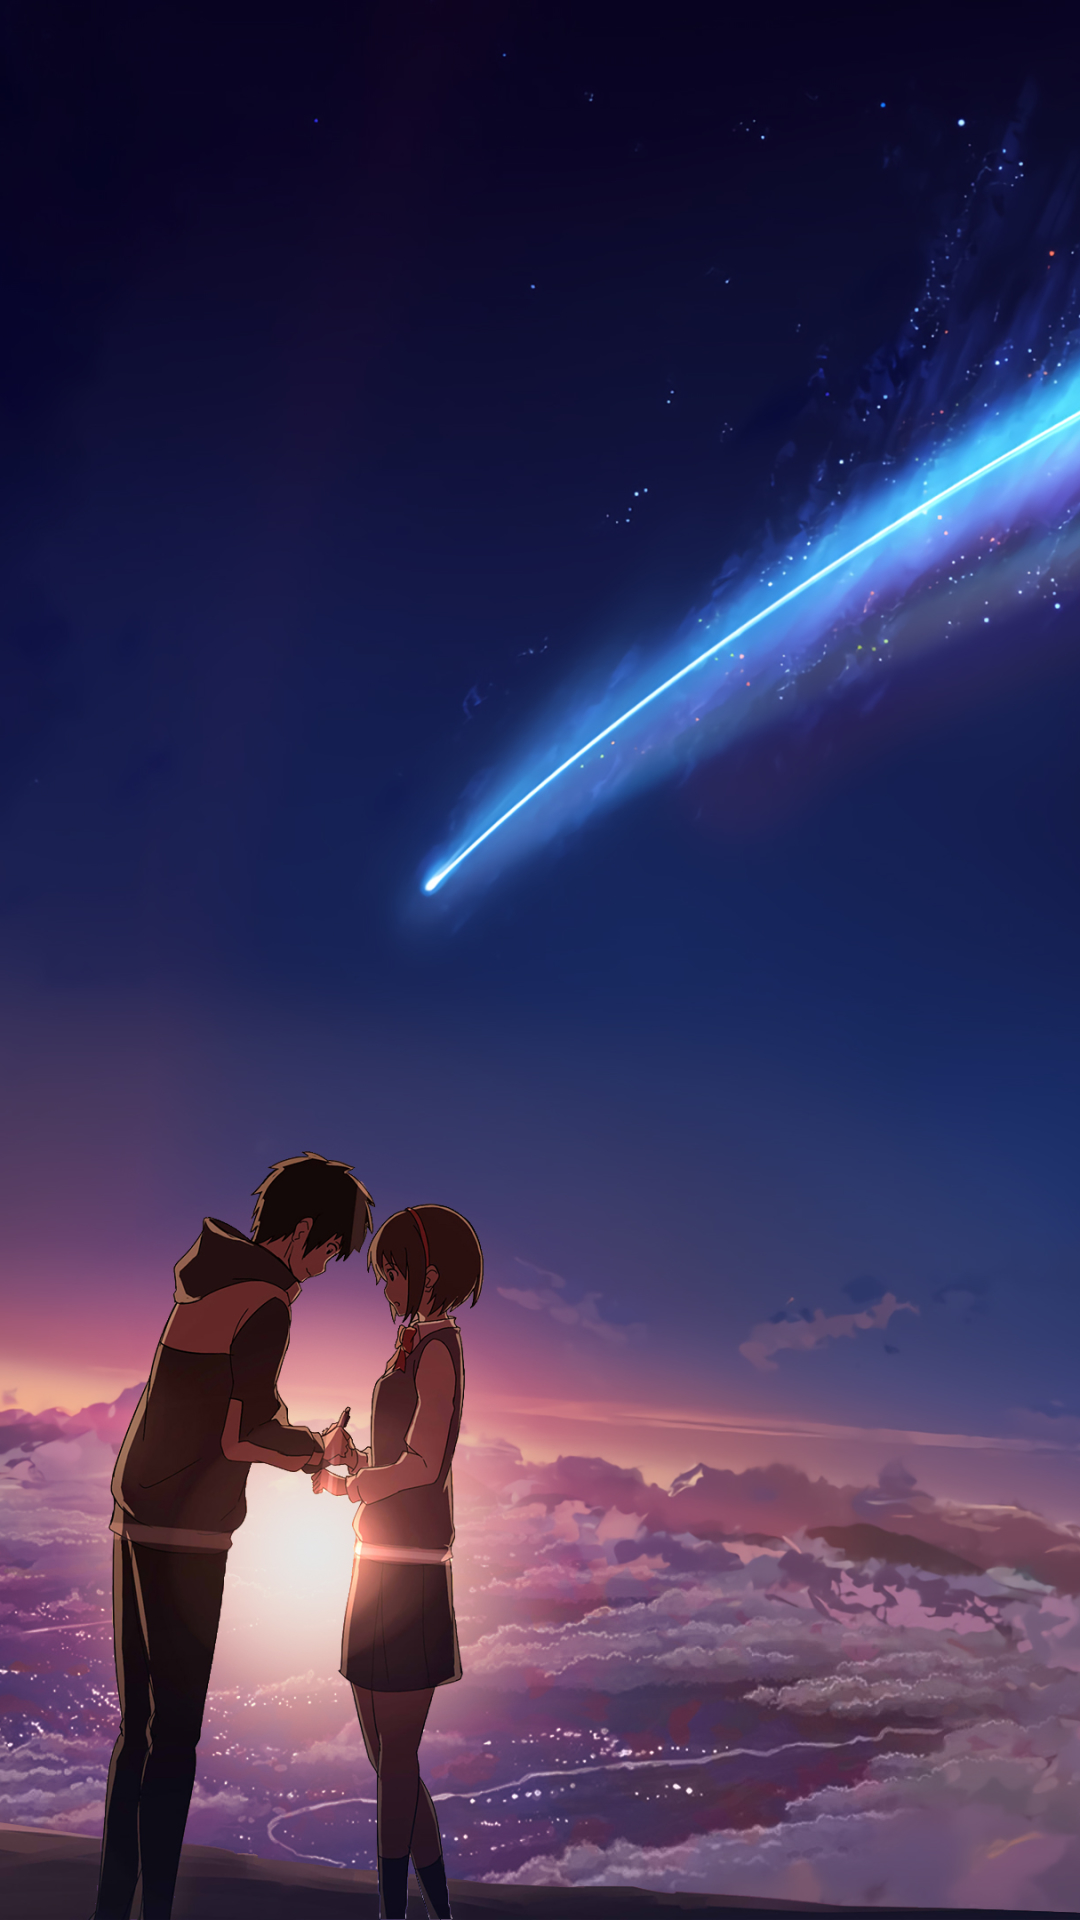 Kimi No Na Wa Your Name Android Wallpaper Android HD